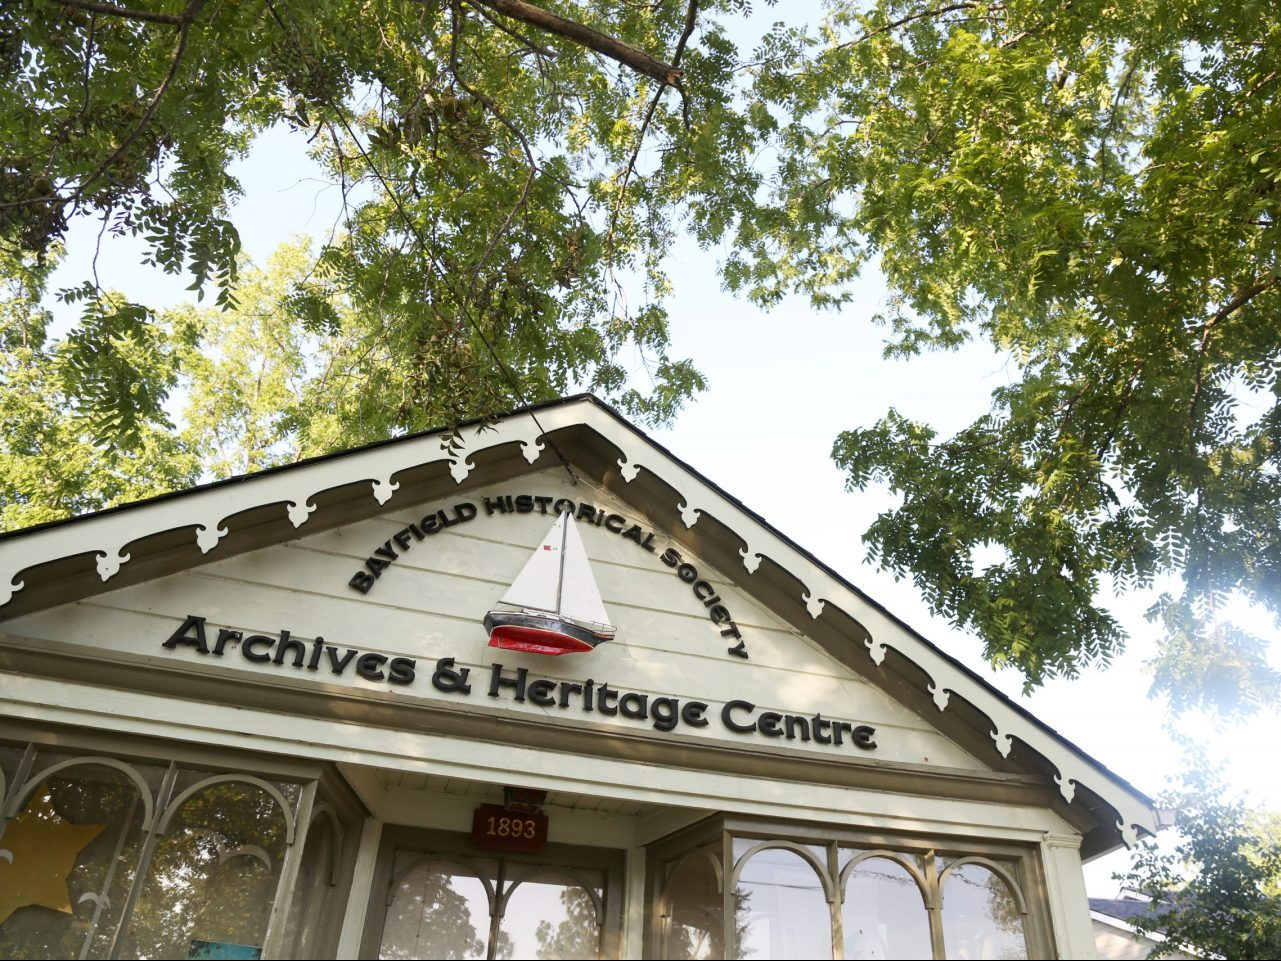 Bayfield Historical Society and Heritage Centre